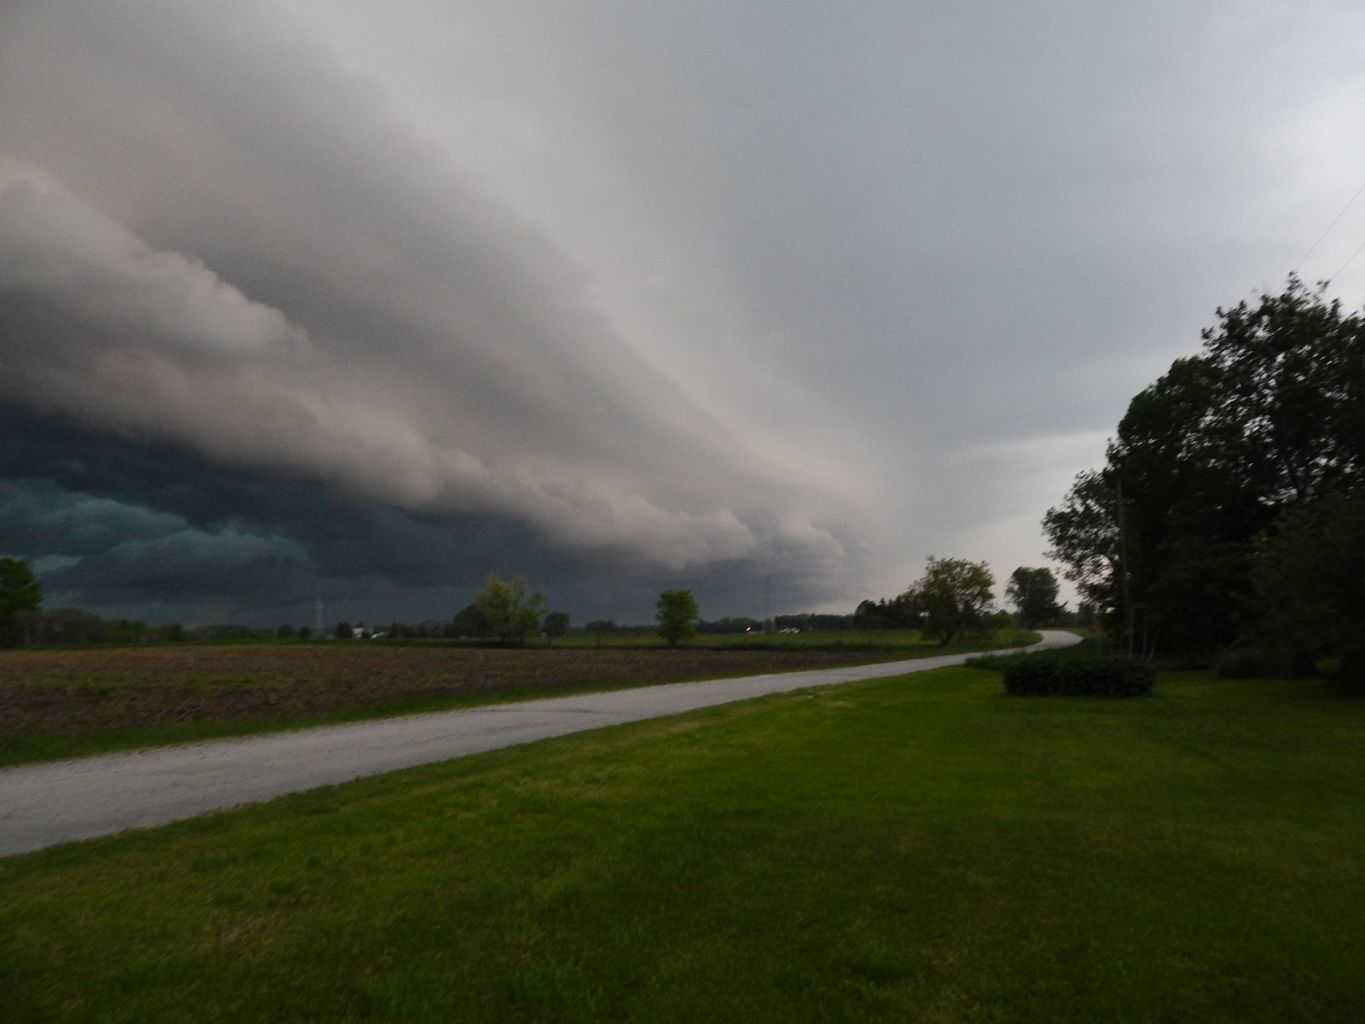 Caught this shelf cloud yesterday evening in Abrams, Wisconsin. The first really good storm of the season!